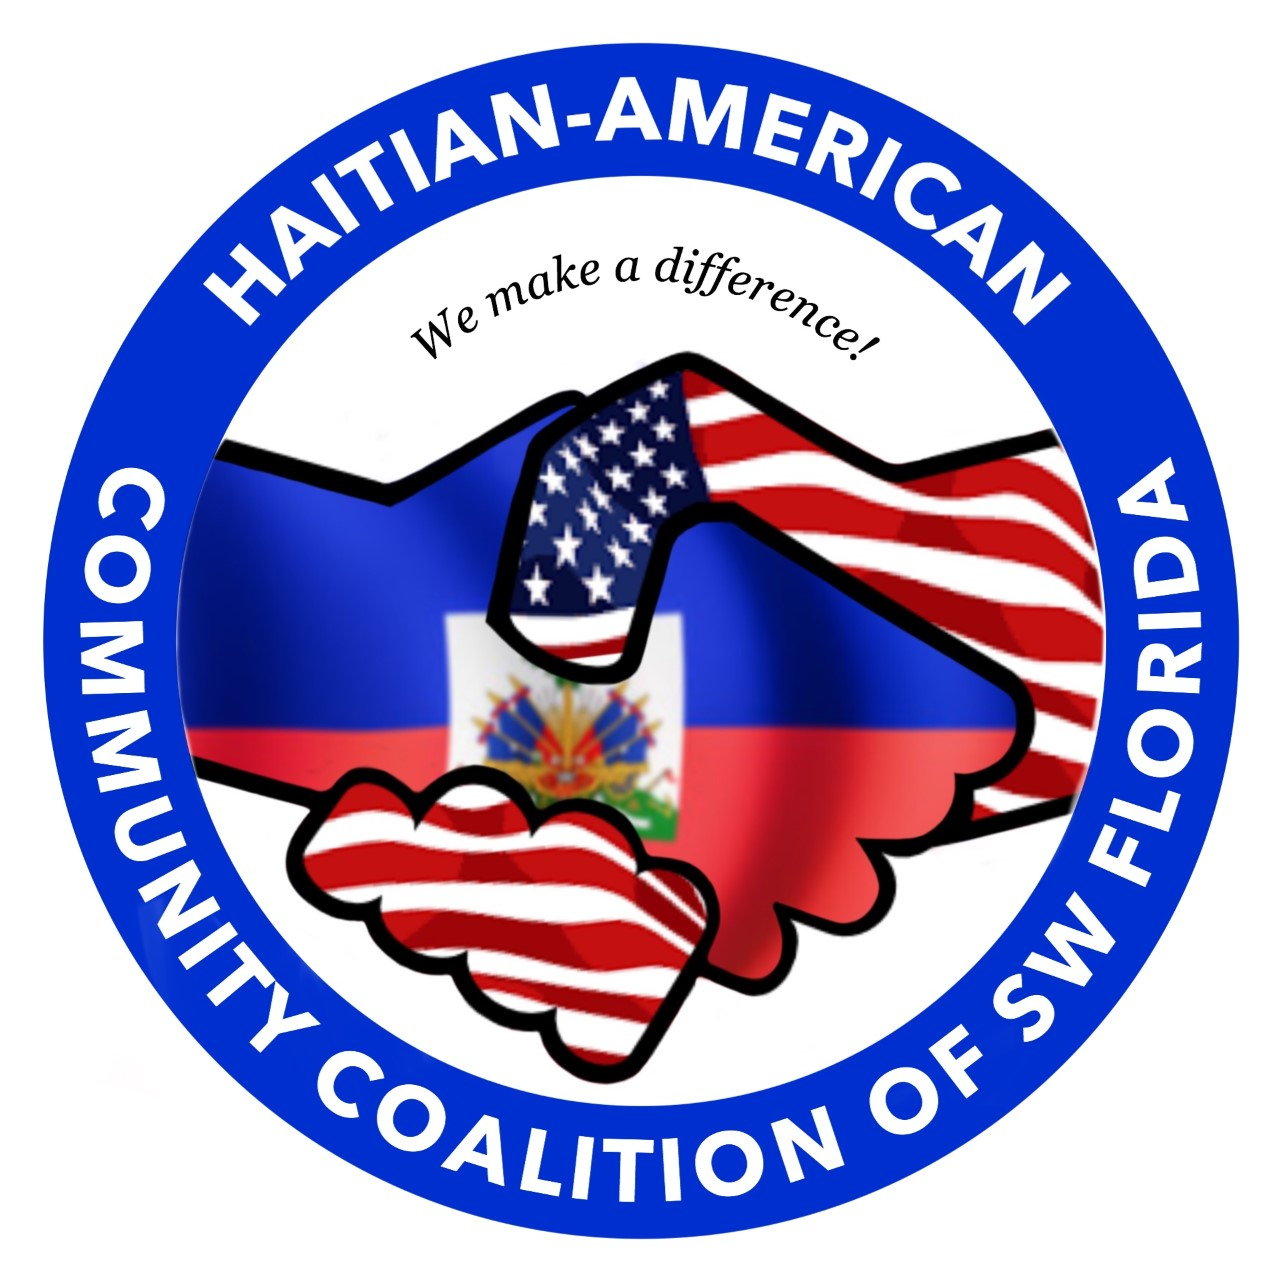 Haitian-American Community Coalition of Southwest Florida Logo